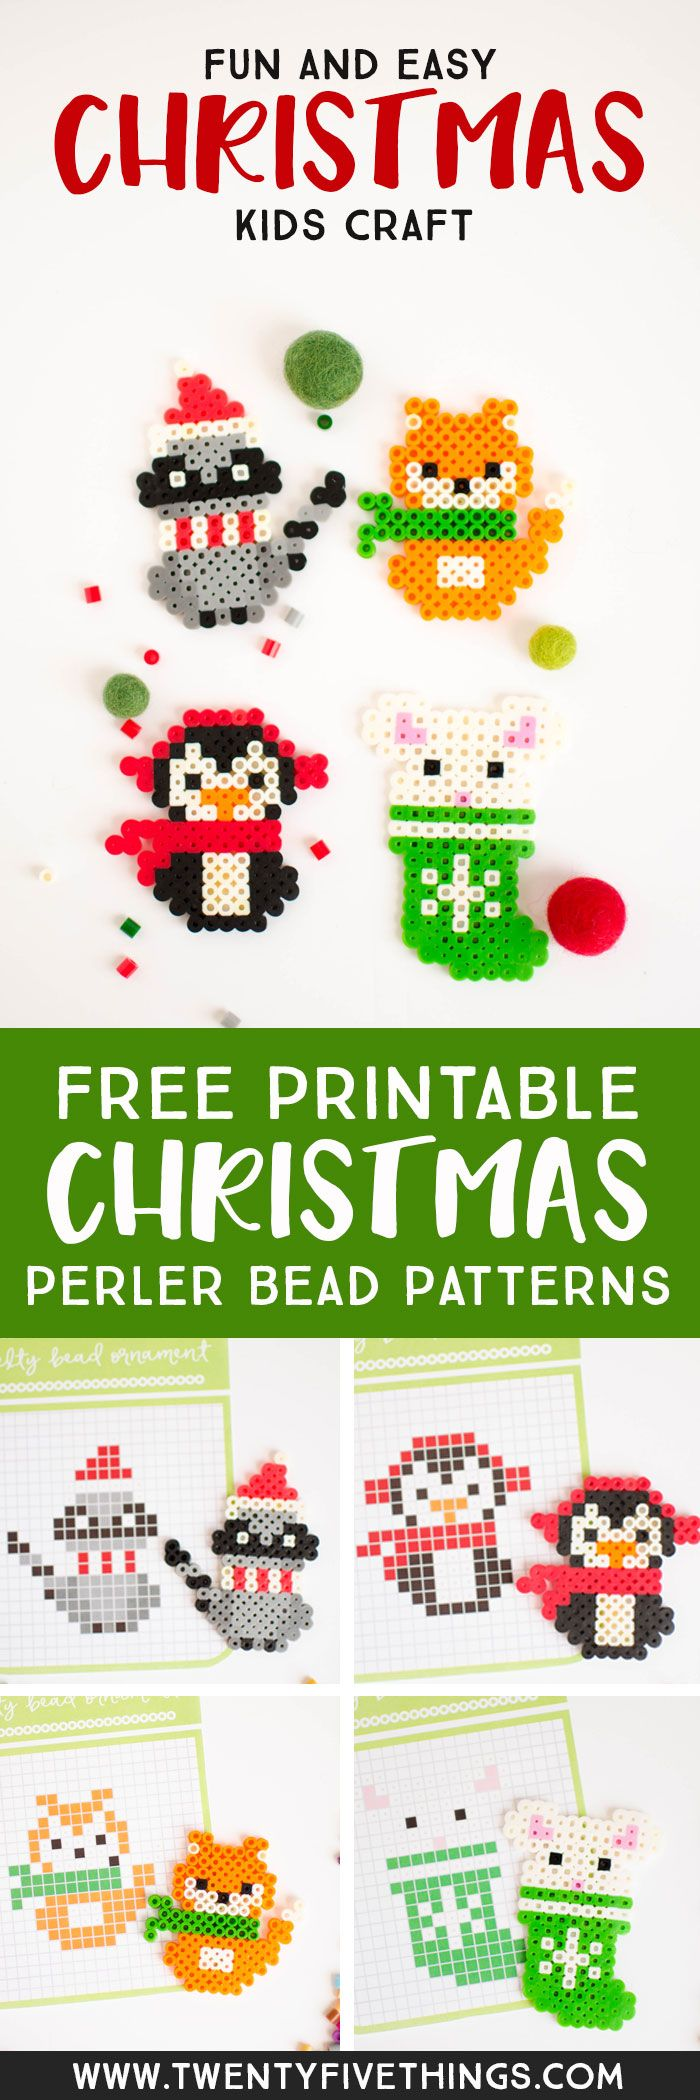 Download the free printable Christmas perler bead patterns for fun kids' Christmas crafts. We love using melty beads to make Christmas ornaments.